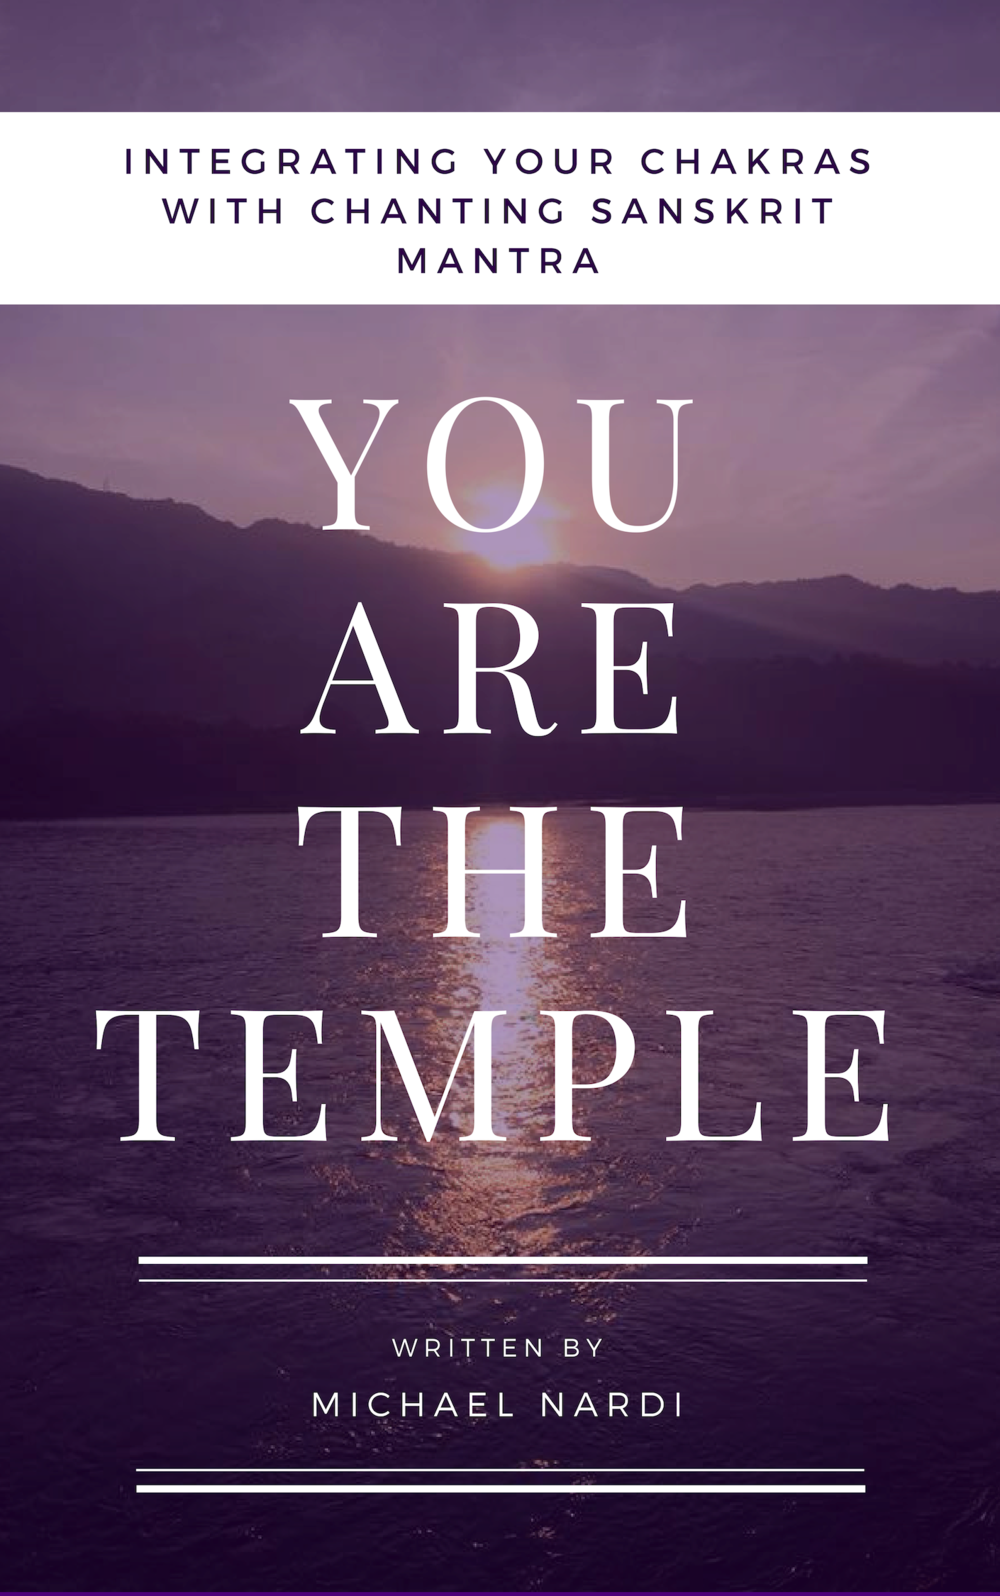 You are the Temple- Ingetrating your Chakras with Chanting Sanskrit Mantra